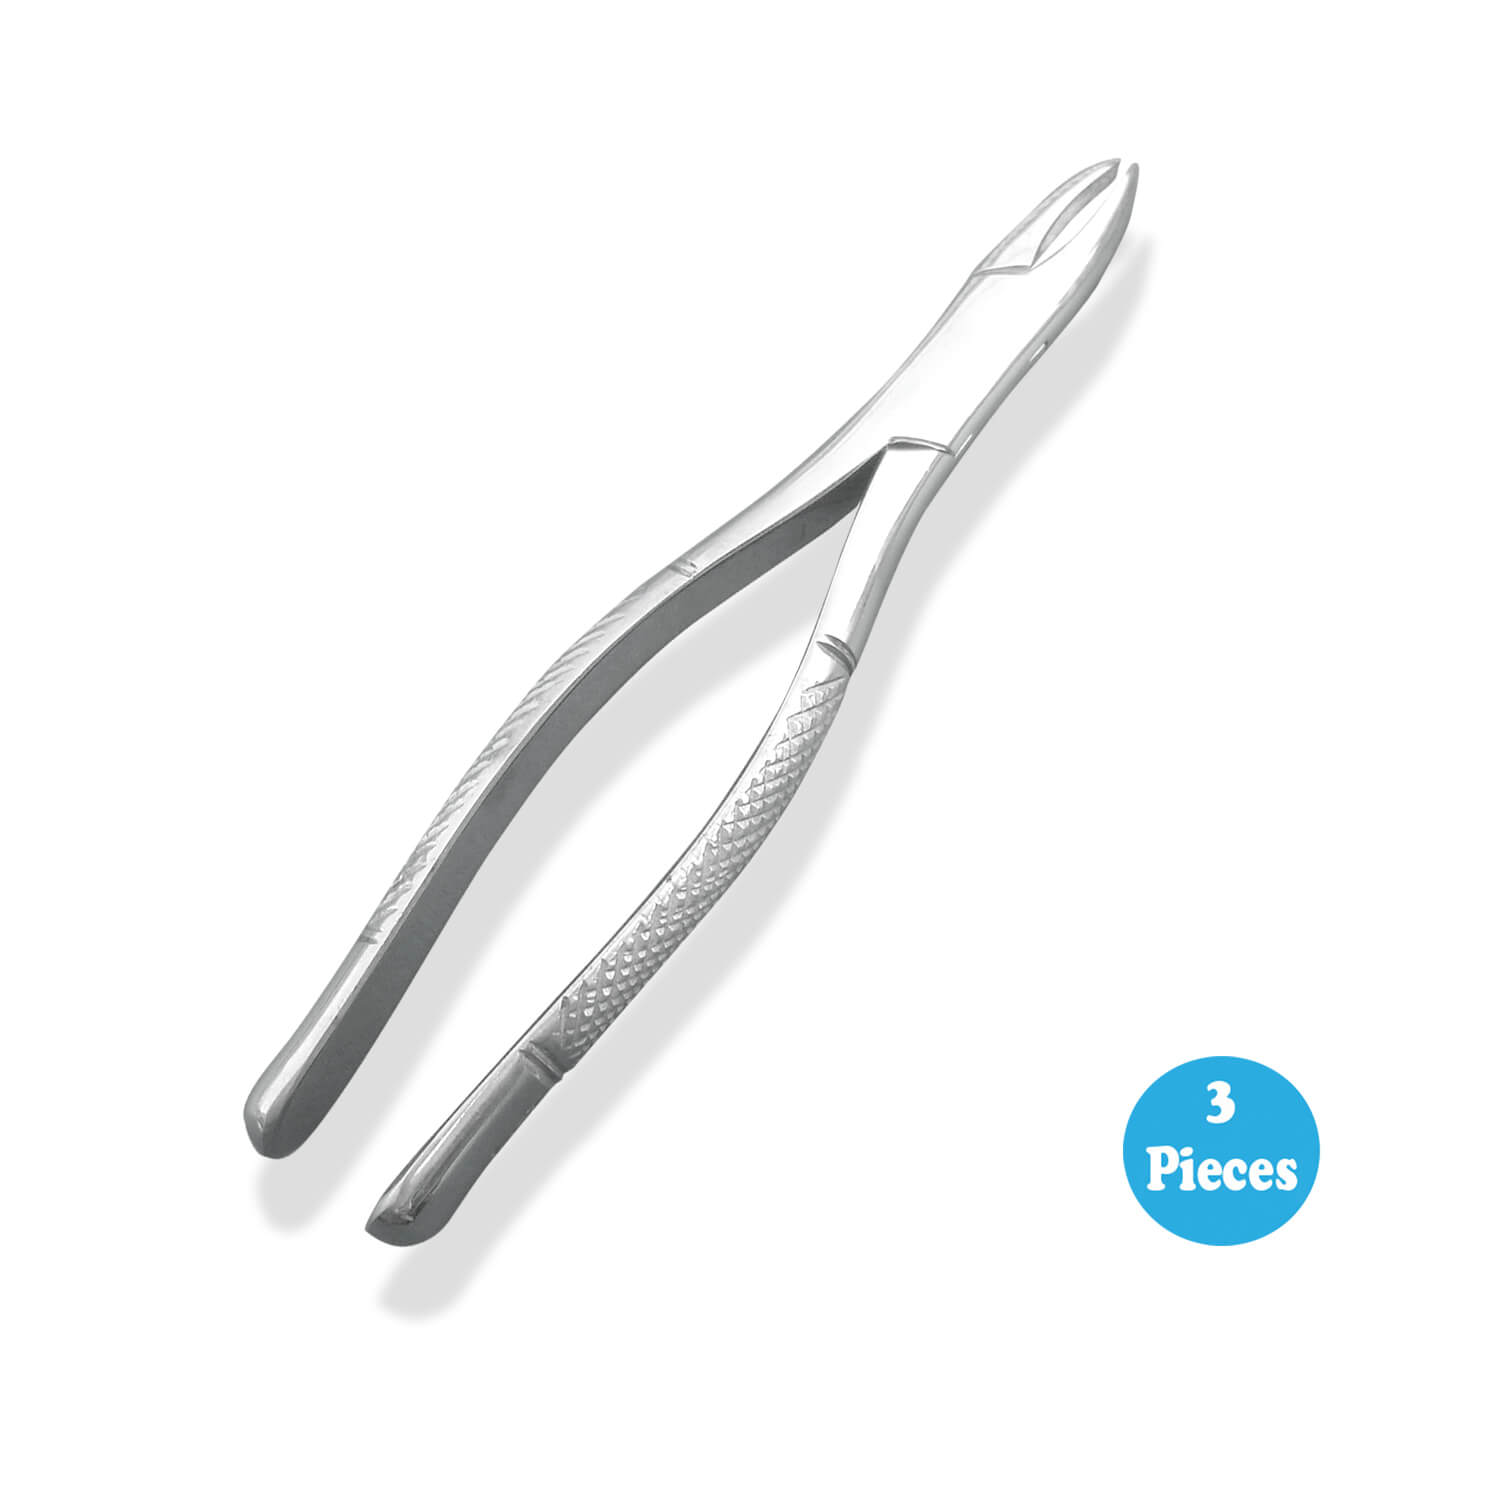 3 Tooth Extraction forceps #201 Surgical Dental Instruments